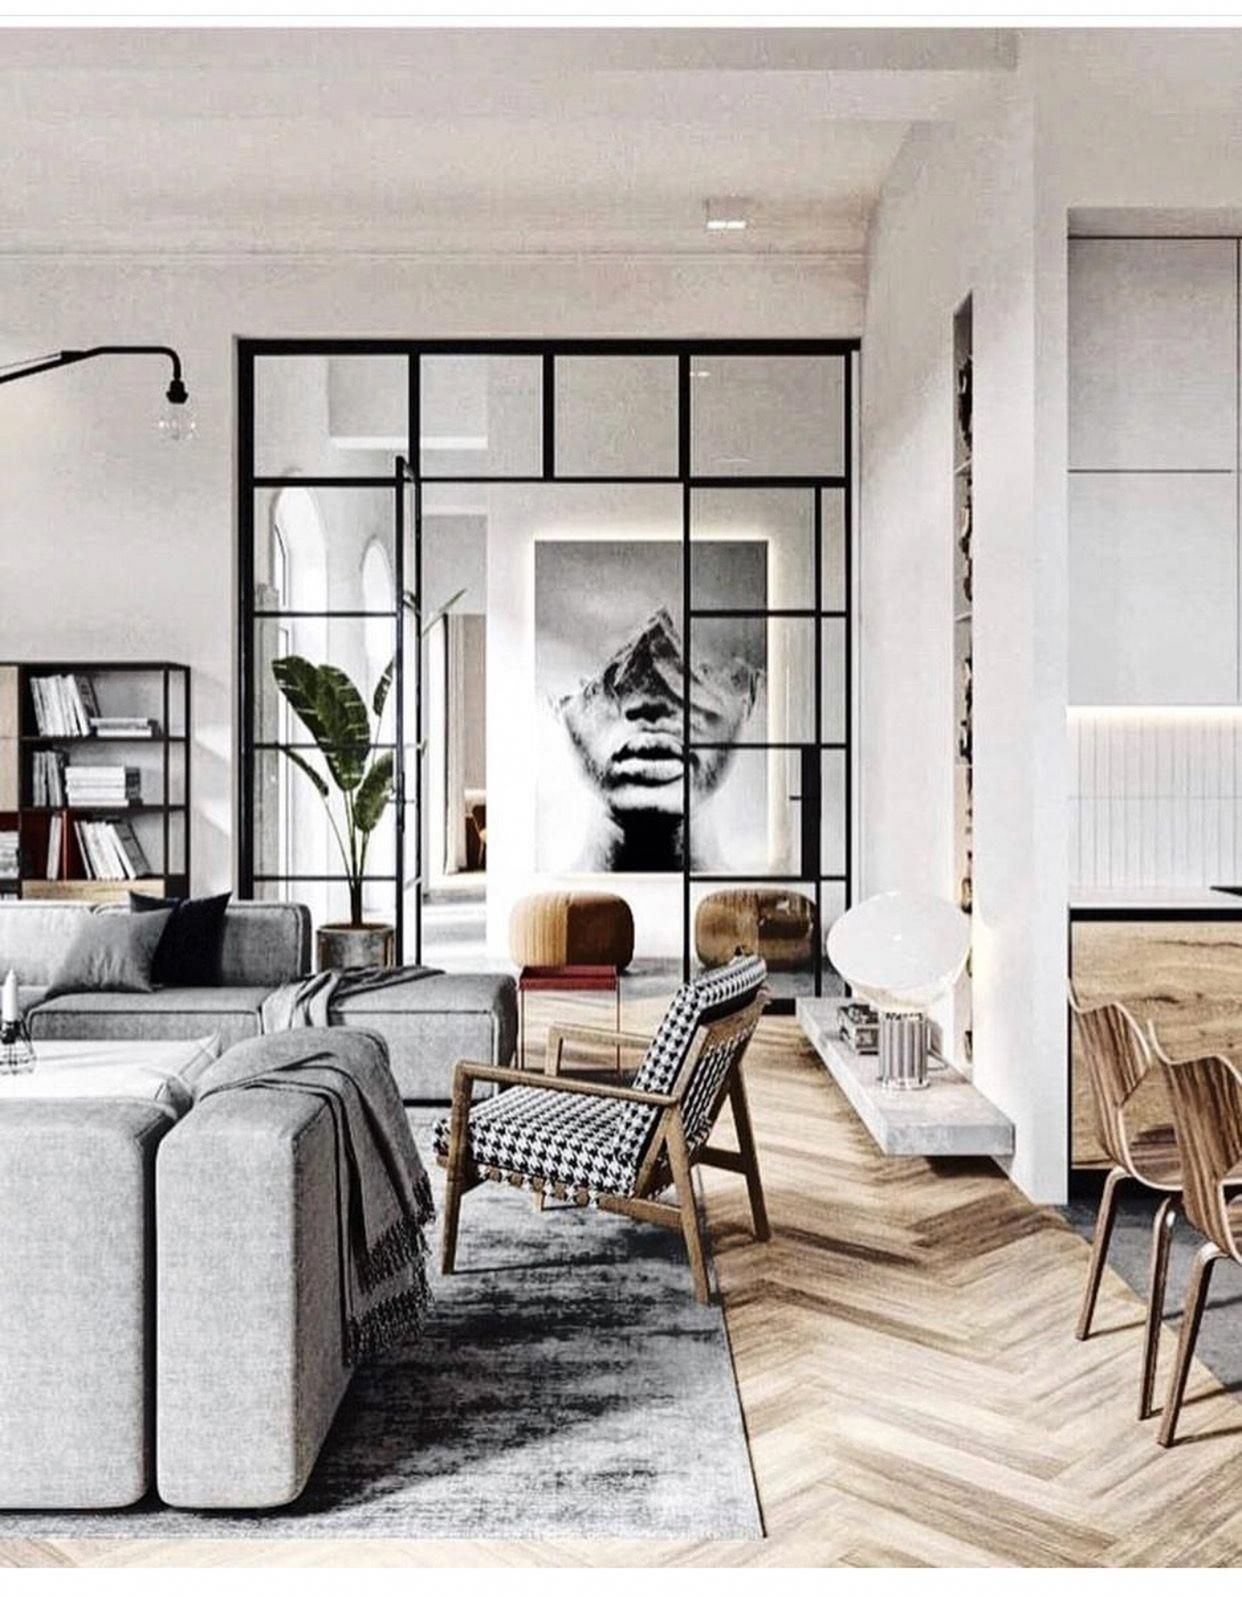 Modern Home Design Construction Modernhomedesign Industrial Living Room Design Minimalism Interior Interior Design Living Room